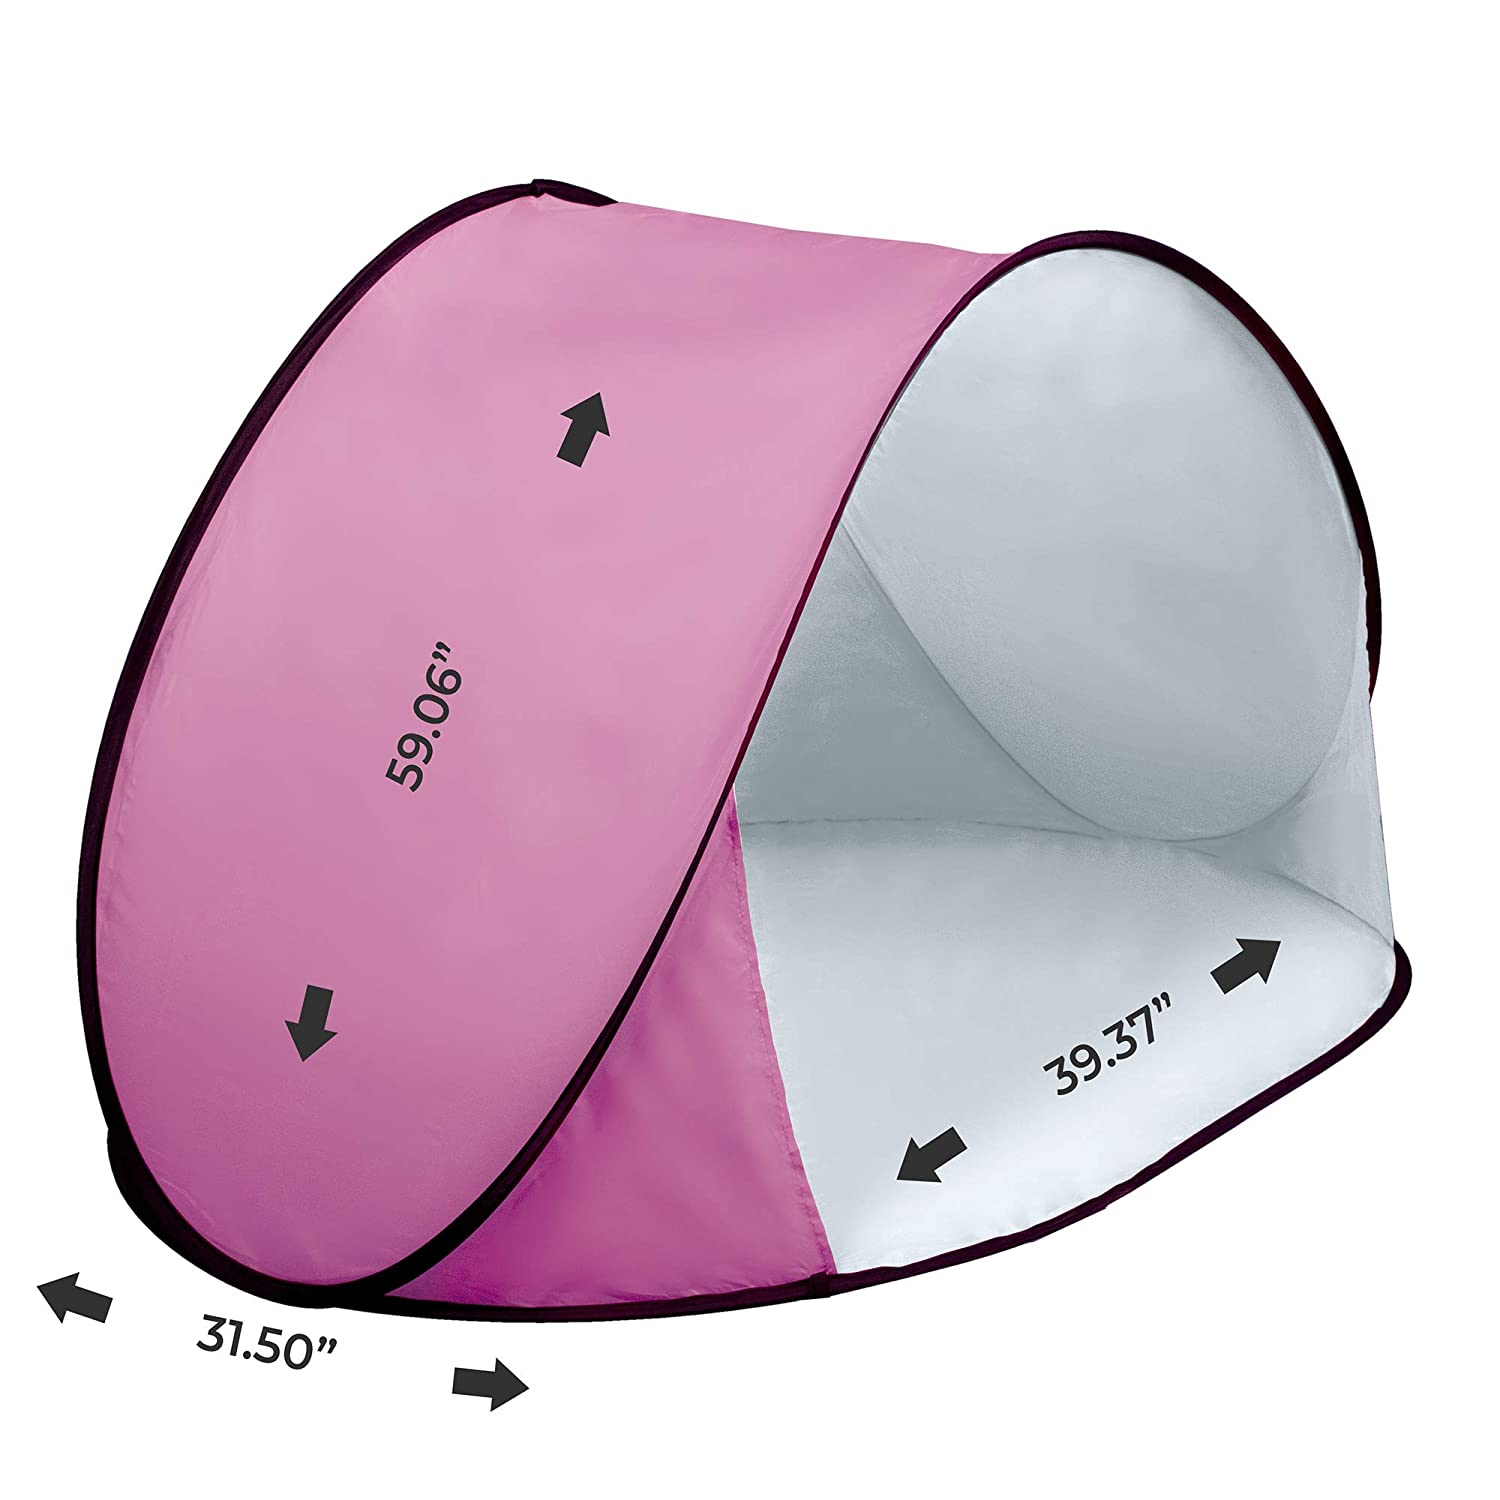 Thermalabs Pluto Pink Beach Tent an Amazing Accessory for Your Kids Comfort Deluxe Lightweight Toddlers Tent with Carrying Bag. Keep Your Baby Away from The Heat of The Sun, from Wind Rain